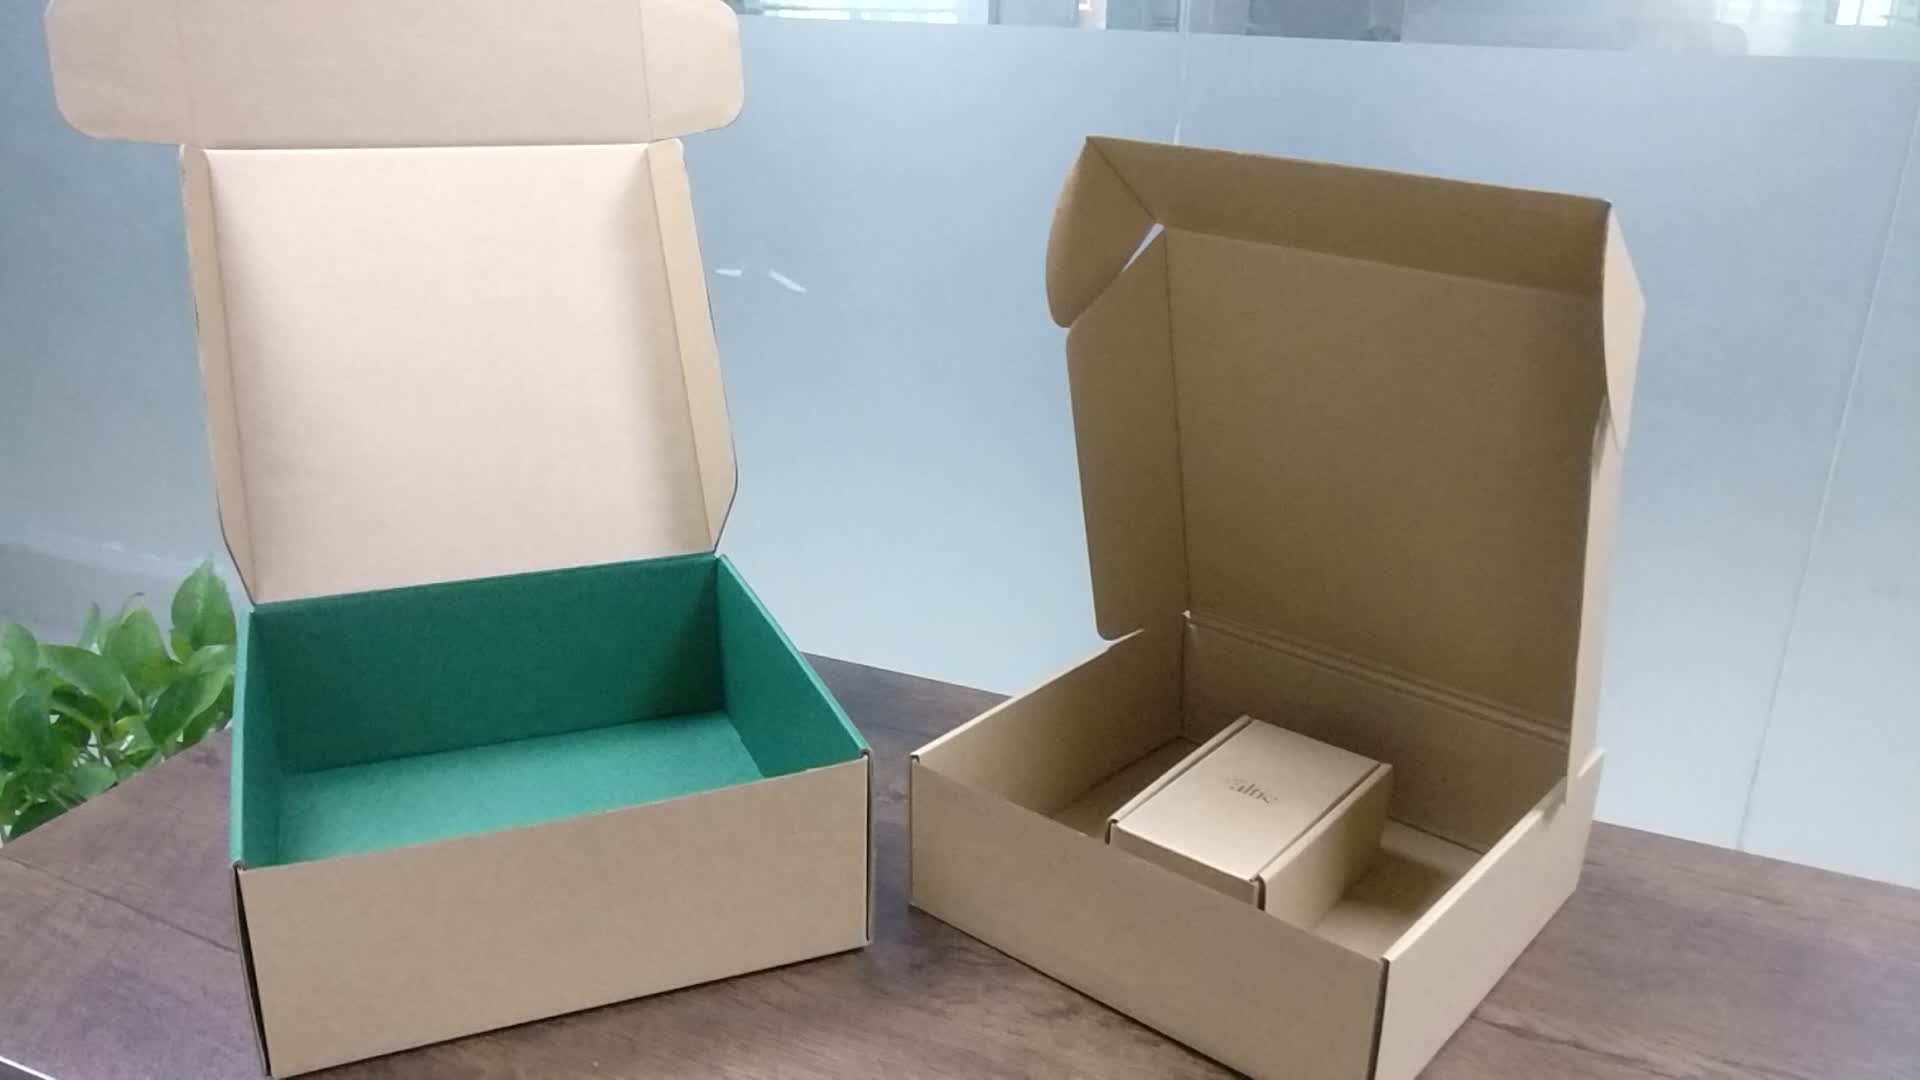 B fluted corrugated front tuck cardboard mailers hard large brown kraft shipping packaging box with dust flaps